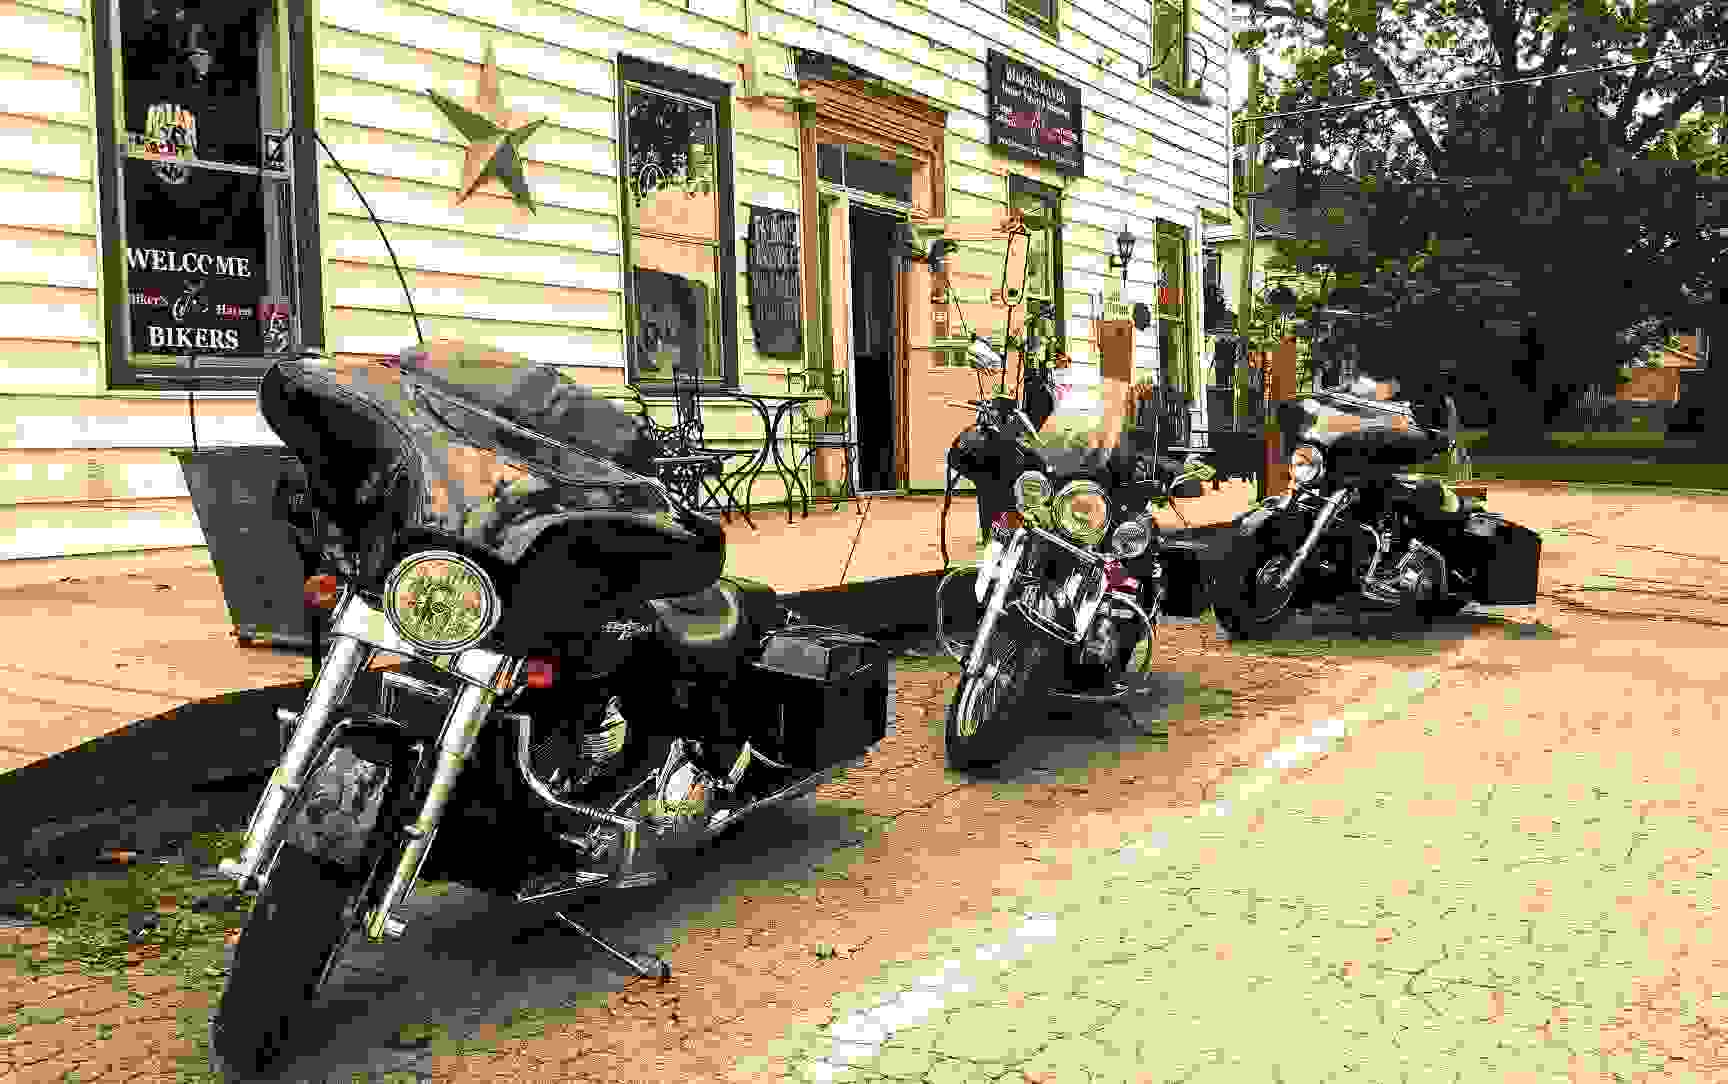 3  motorcycles parked in front of the Haldimand House Marketplace, Caledonia Ontario.